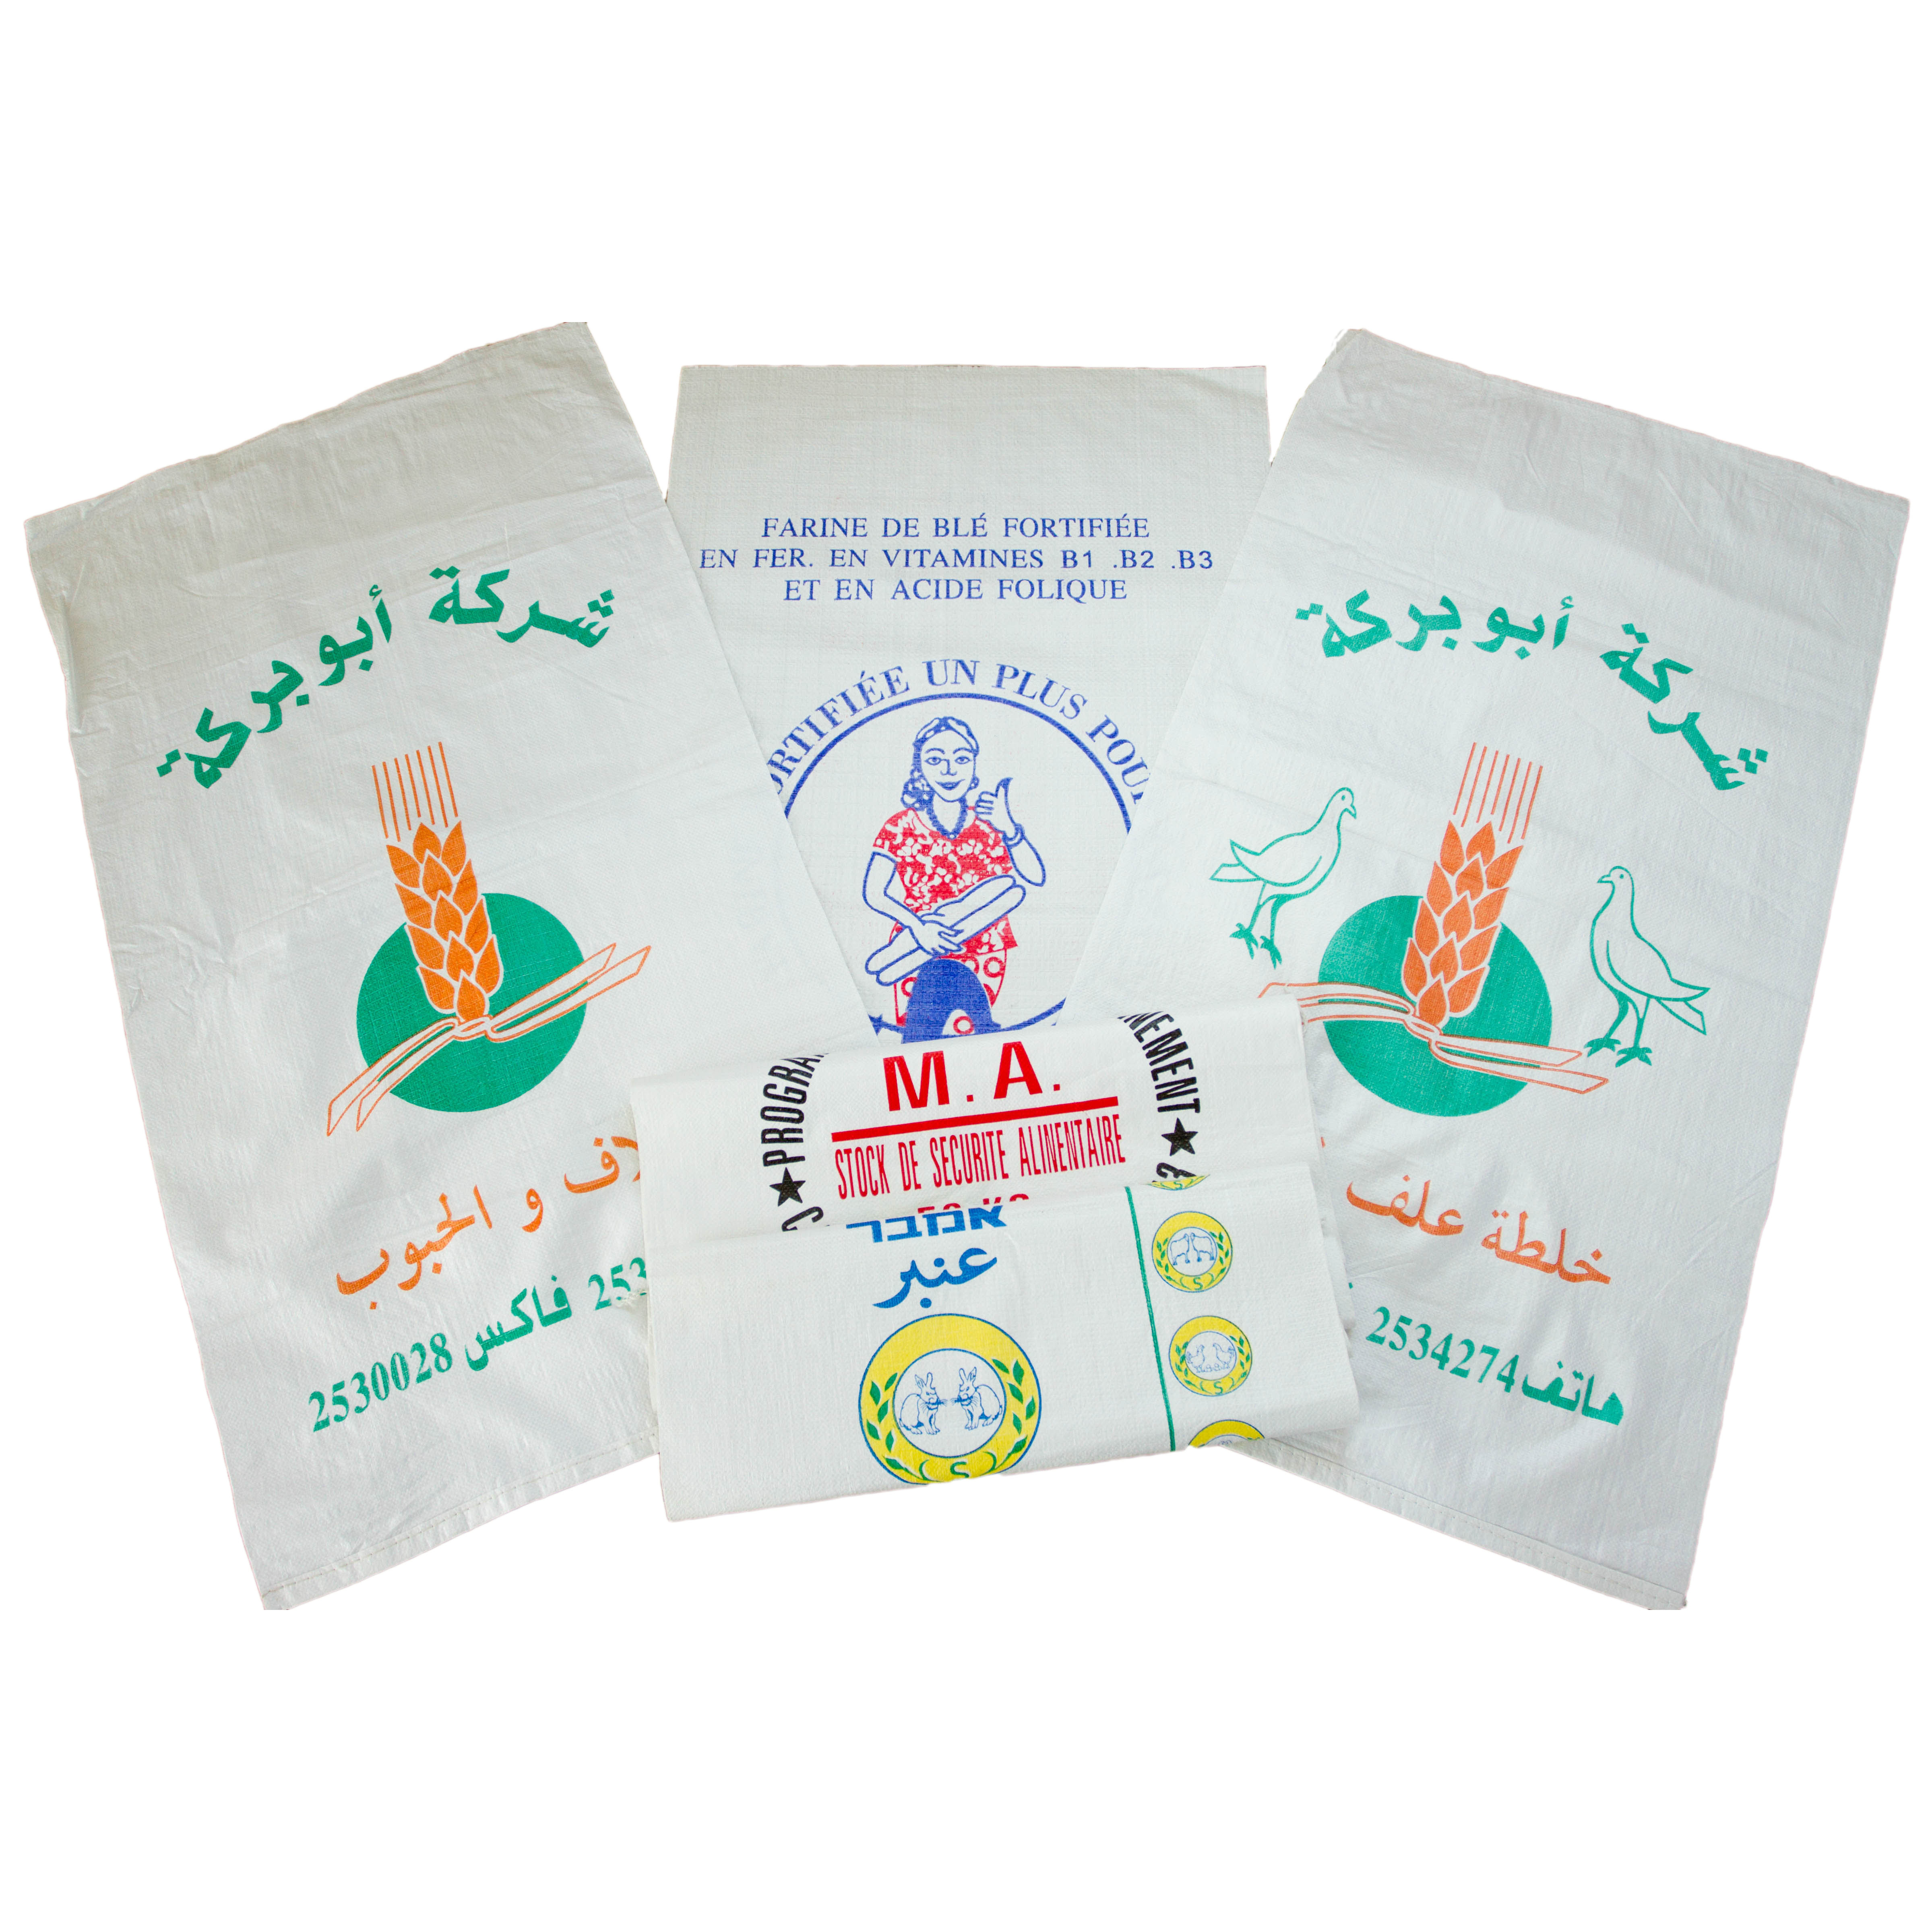 25kg Weight PP Woven Bag / Sacks Packaging Wheat Flour For Sale In Bulk